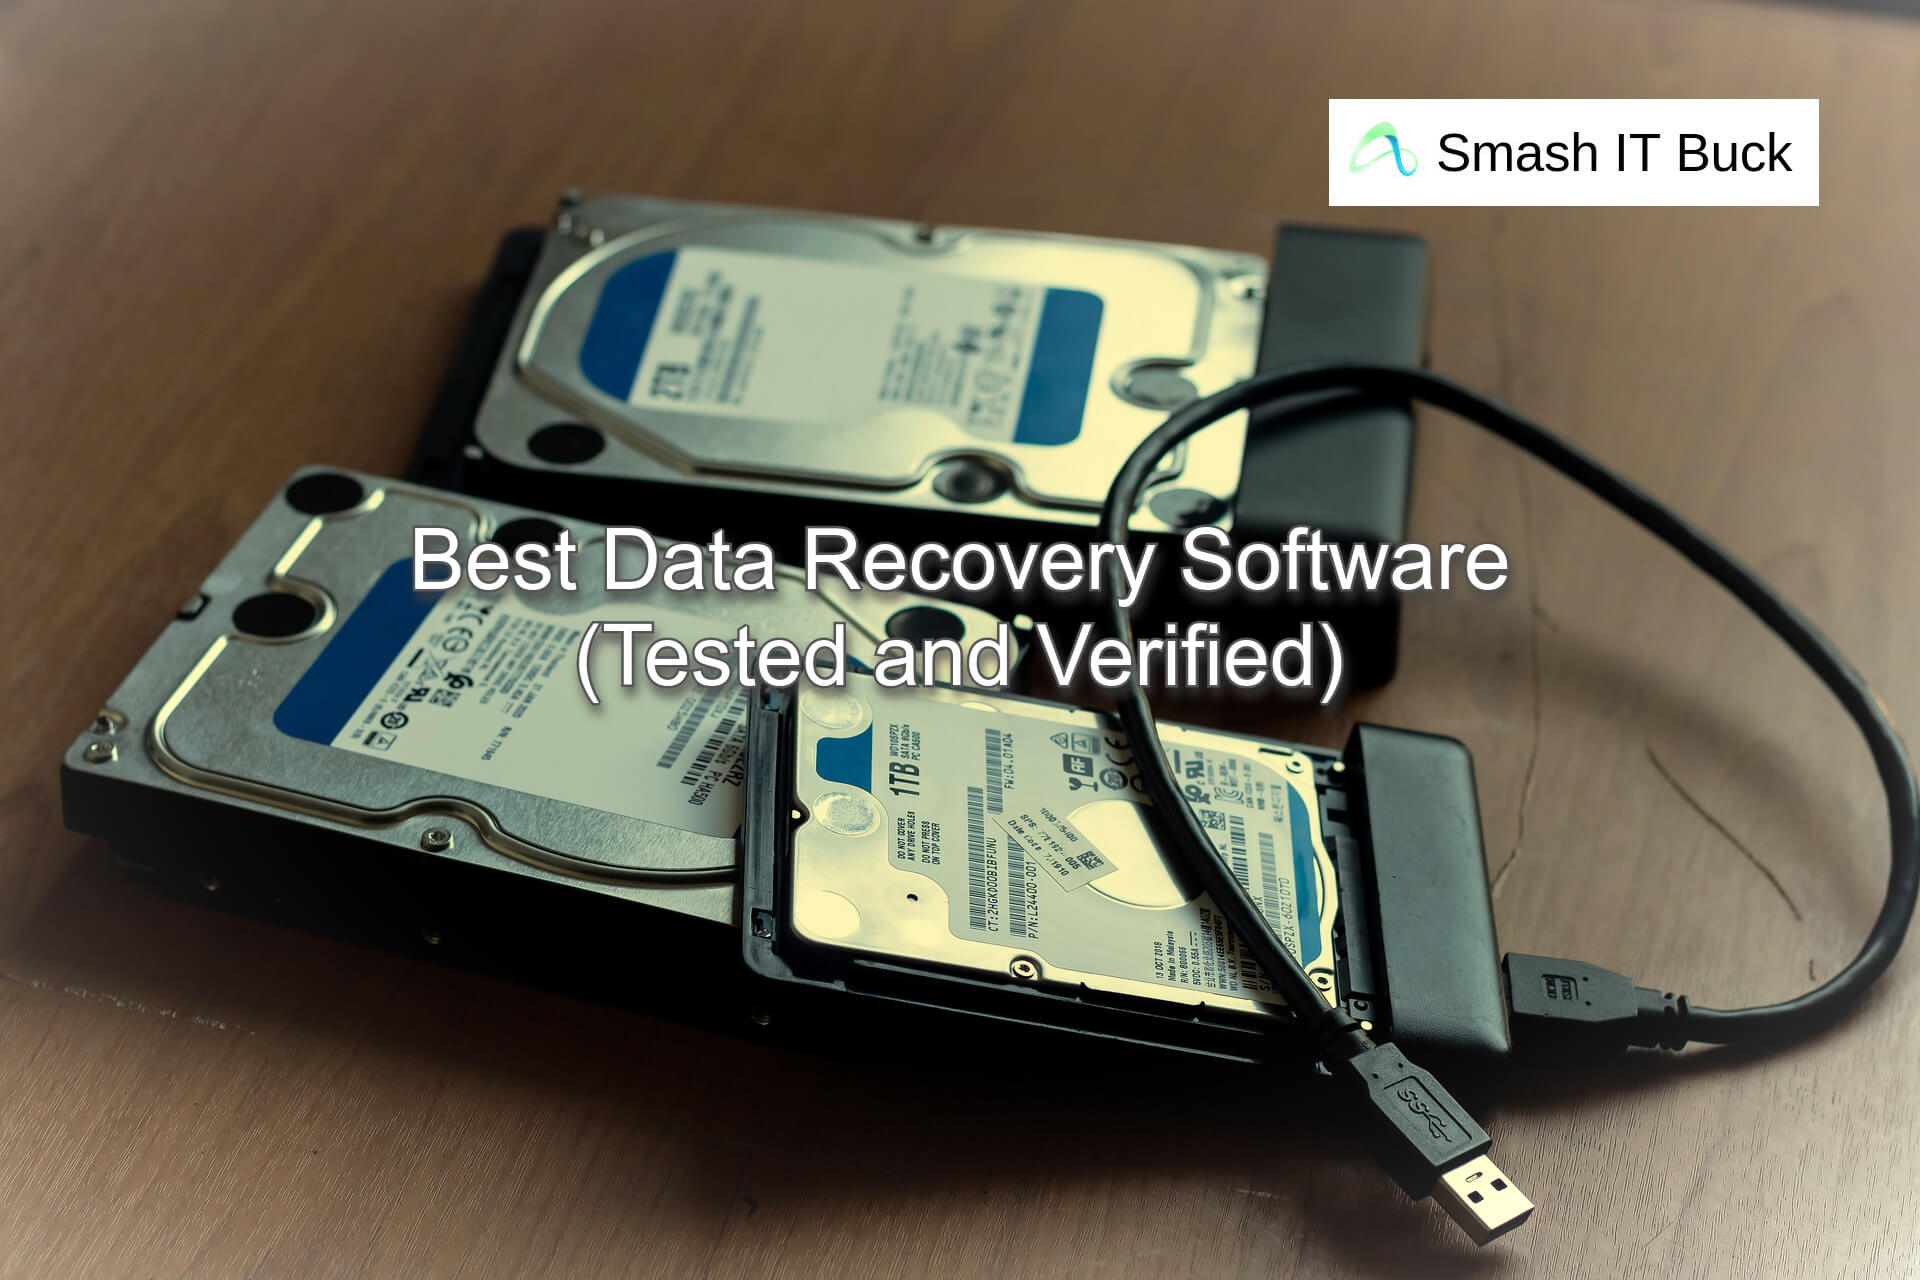 Best Data Recovery Software in 2021 (Verified)